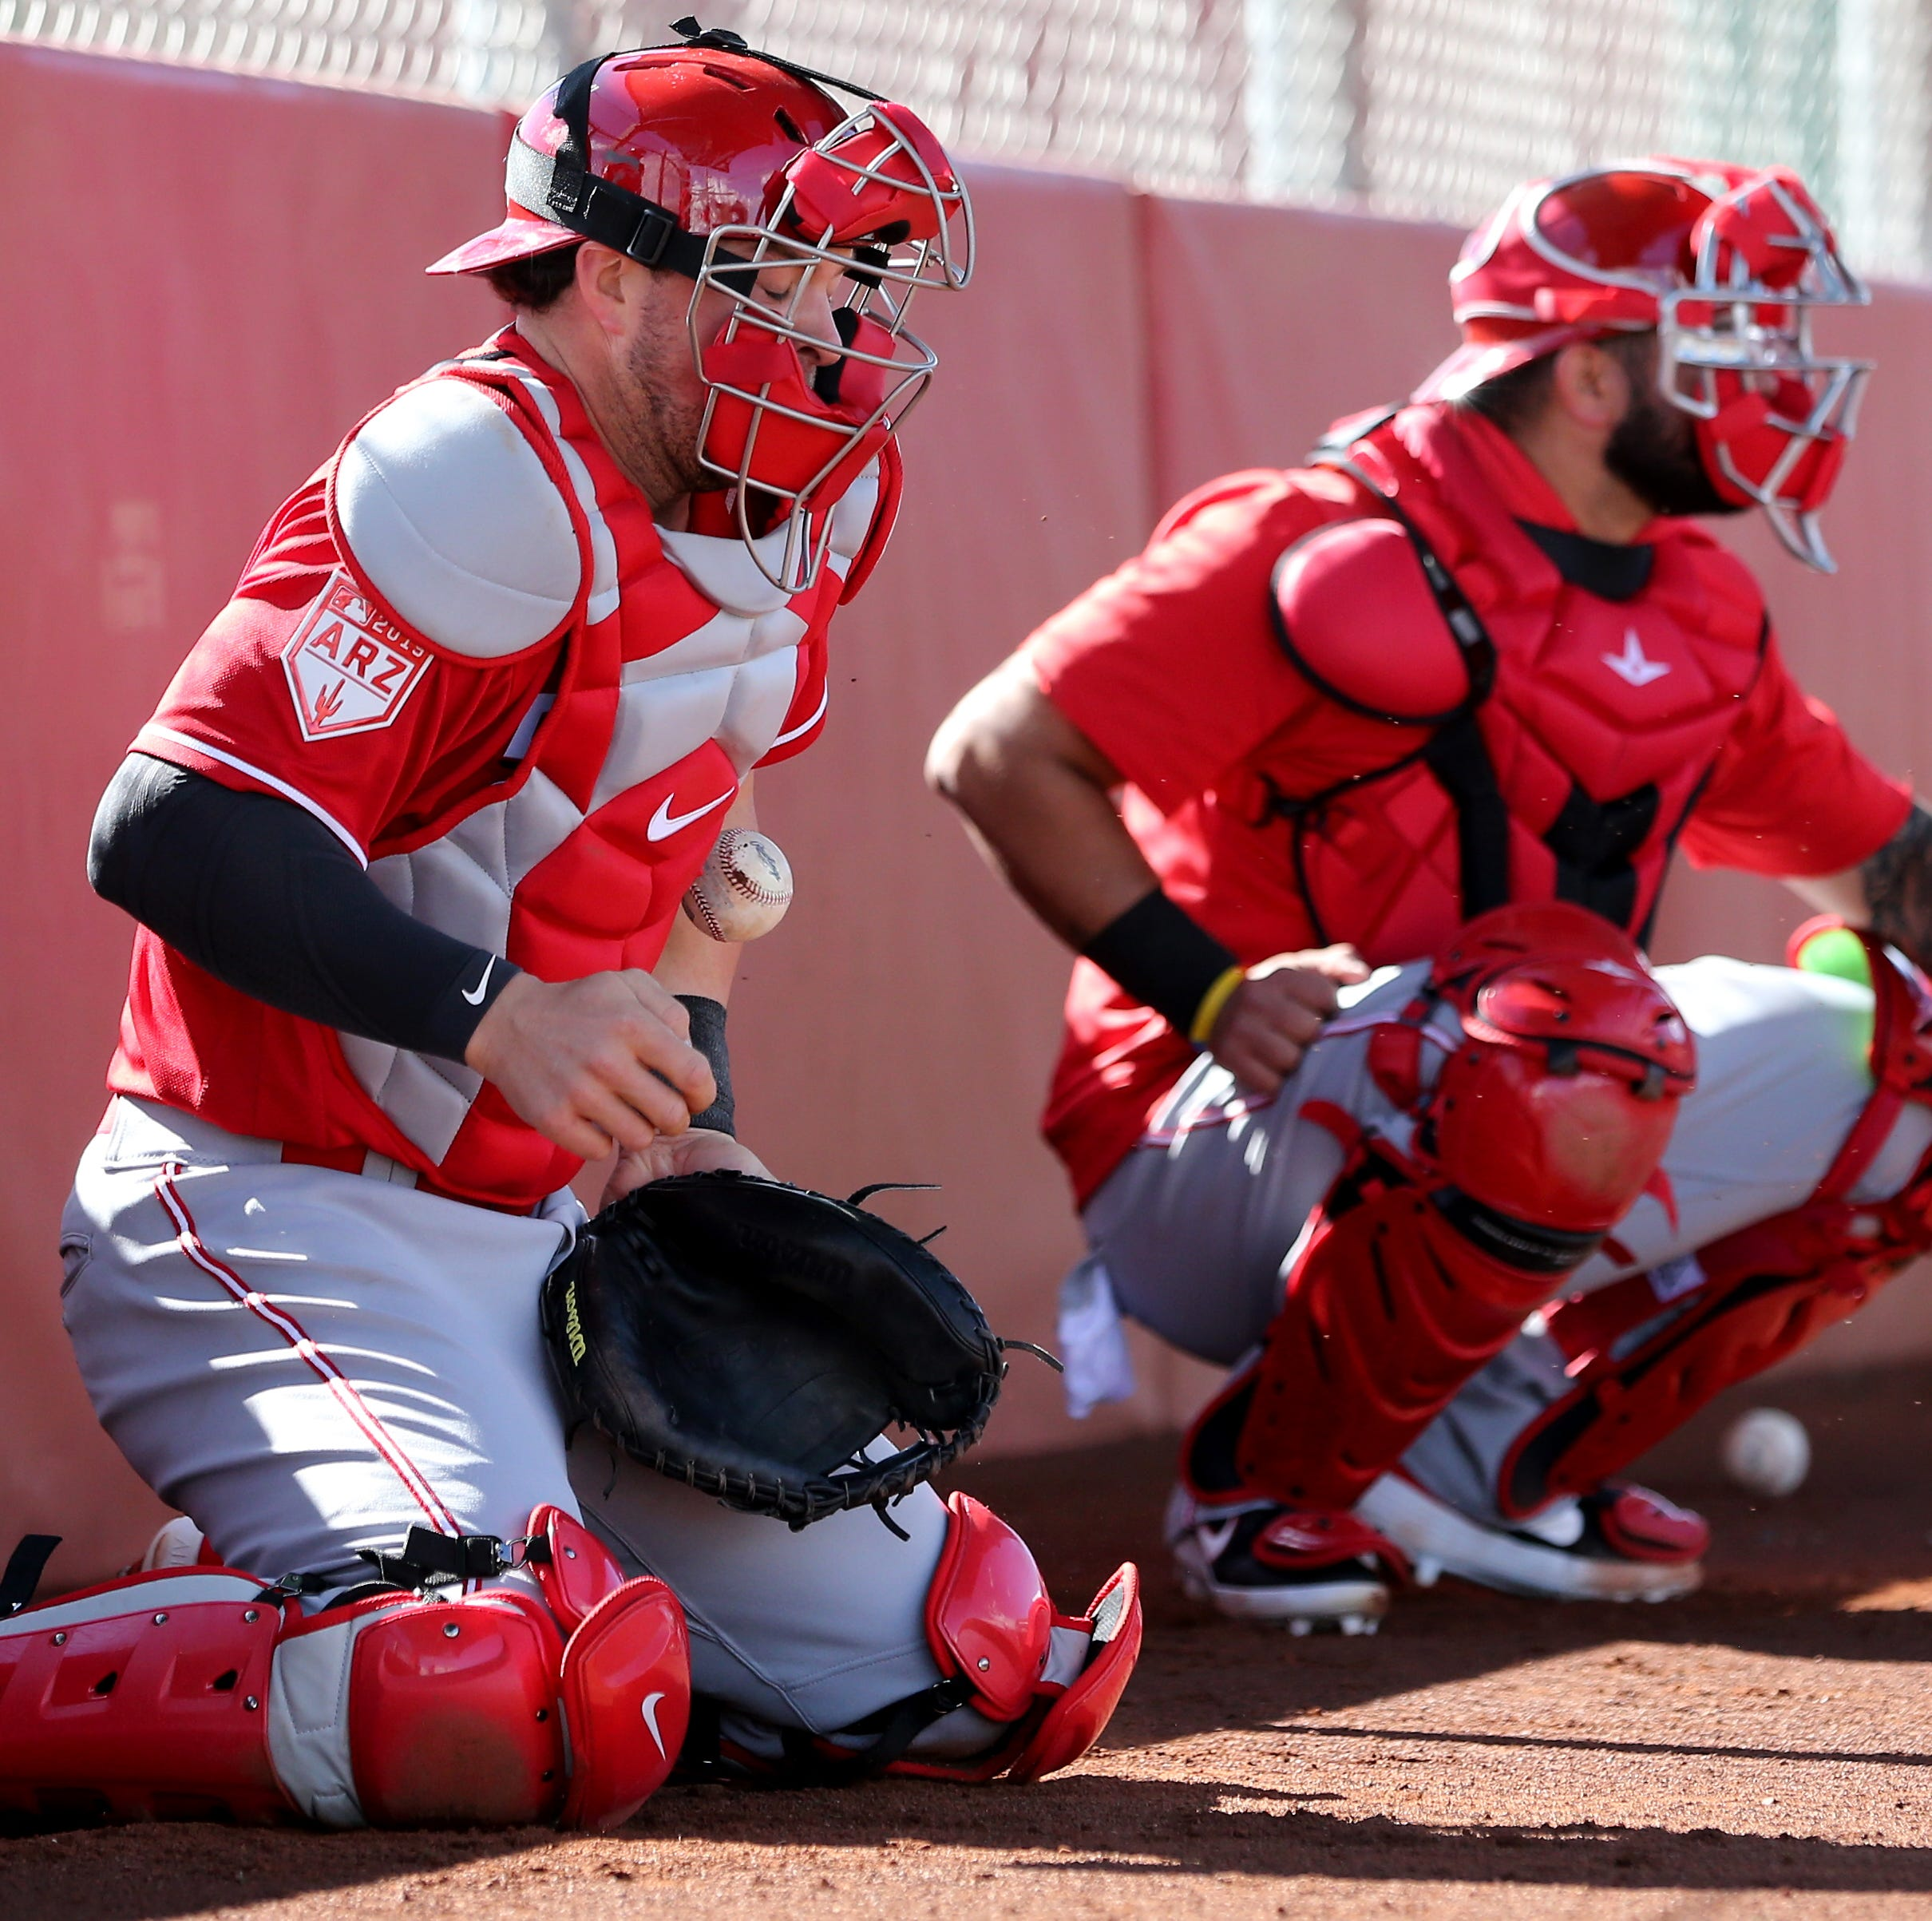 Catcher and shortstop, Kyle Farmer's versatility may help him make Cincinnati Reds roster